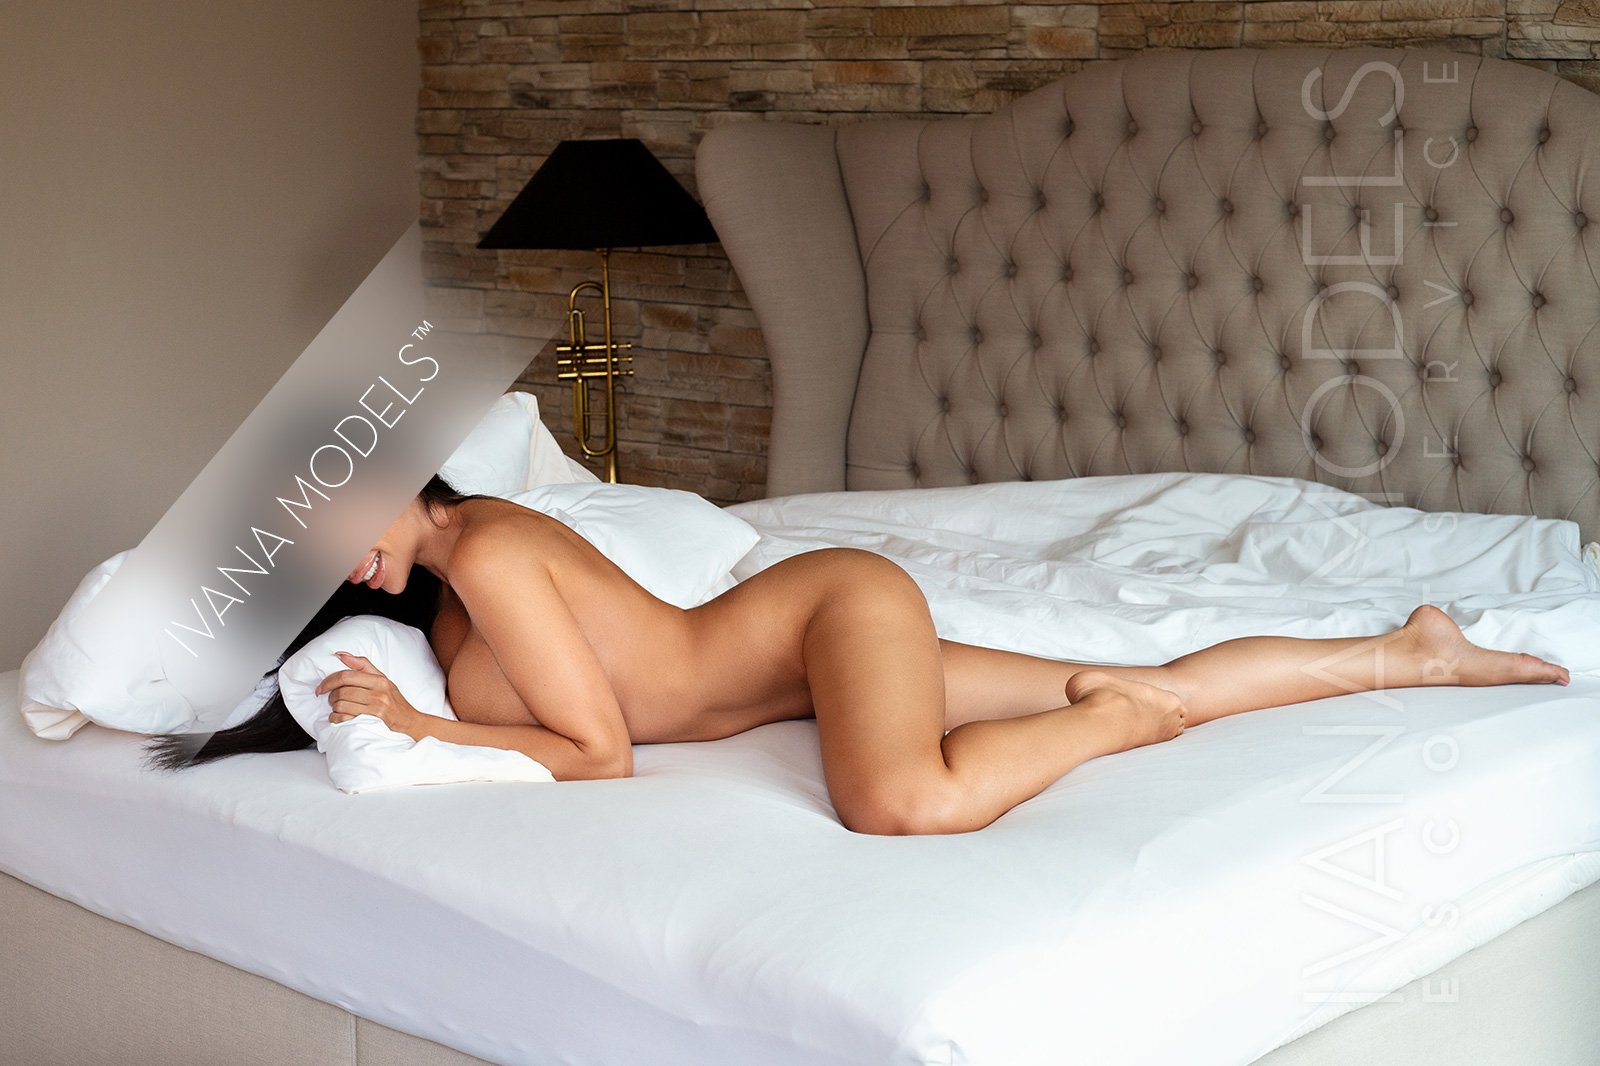 attractive and sophisticated escort lady Sofia by Ivana escort agency Switzerland